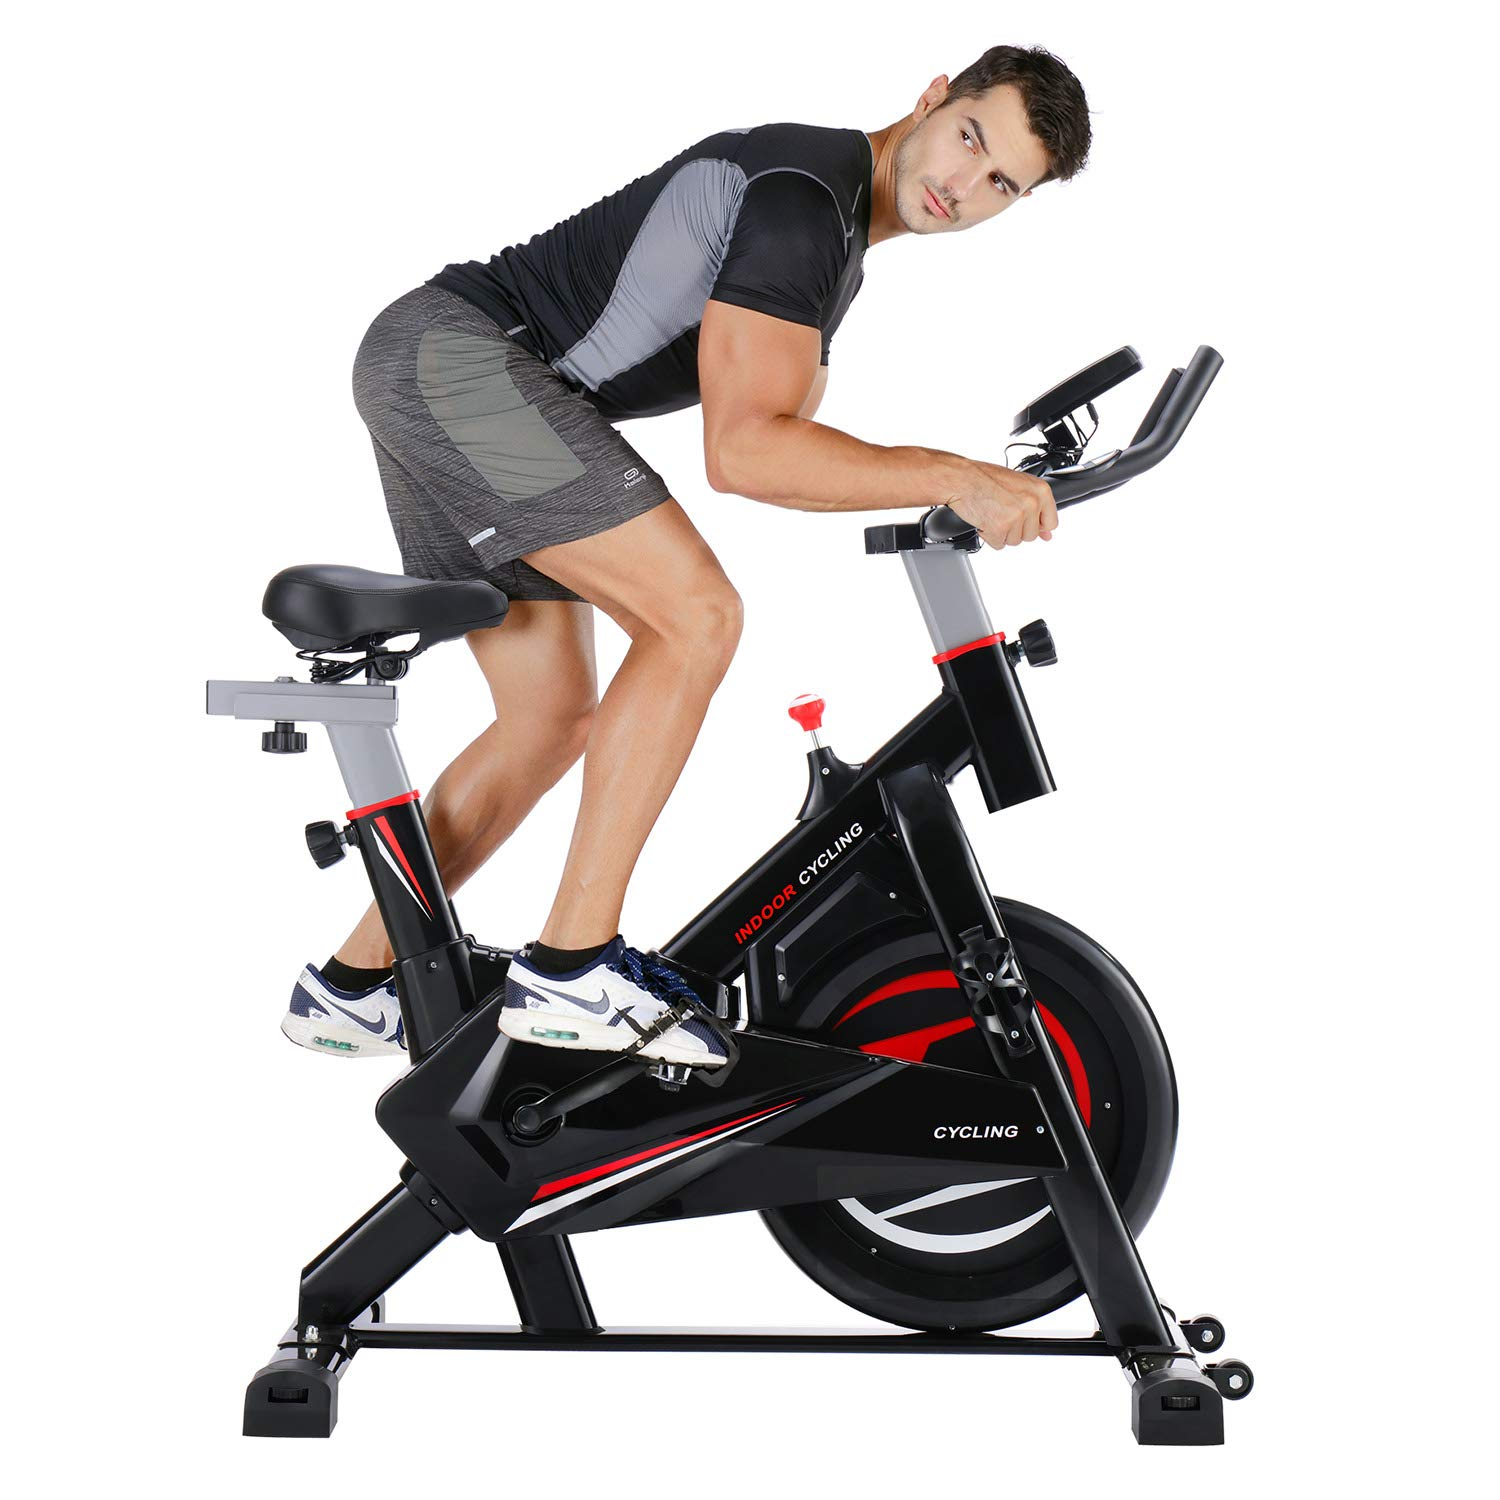 Aitere Home Gym Fitness Indoor Cycling Trainer Quiet Stationary Spinning Bike with Ipad Holder